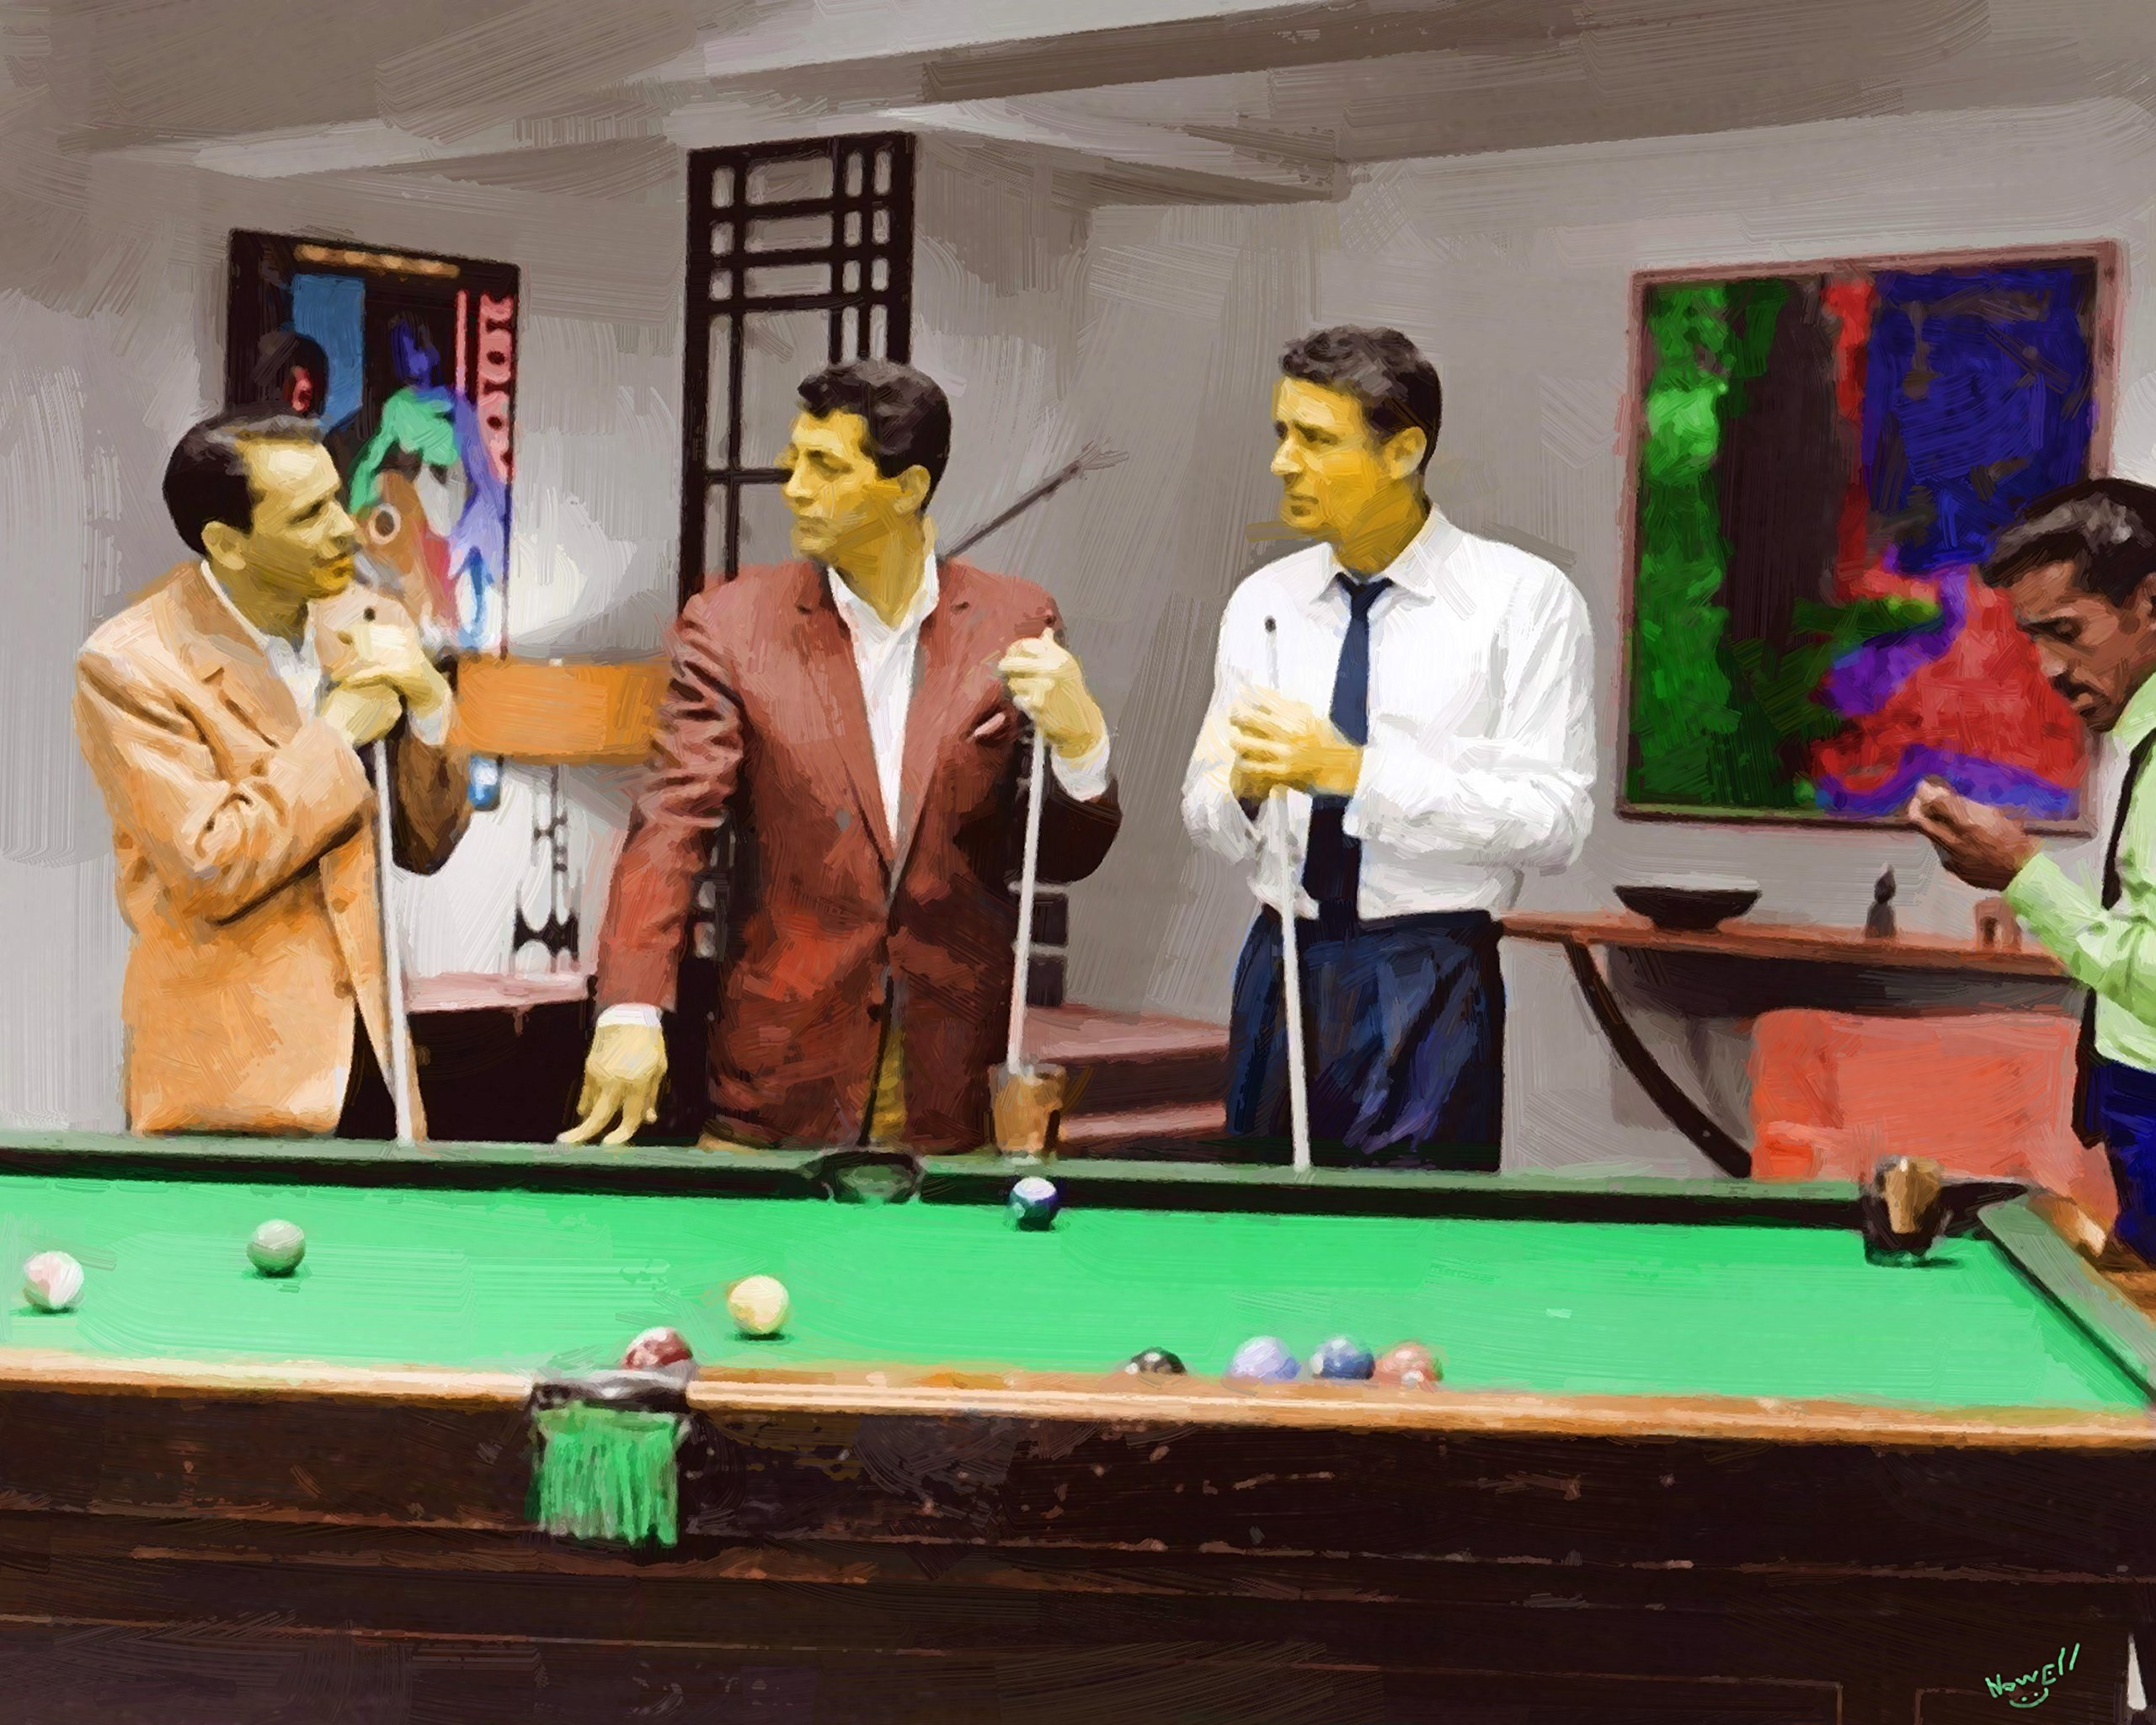 Rat Pack Pool A 16 x 20 Canvas Oil Painting Playing Pool Frank Sinatra Dean Martin Sammy Davis Jr, Peter Lawford Unframed Signed & Numbered Limited Edition From Movie Oceans 11